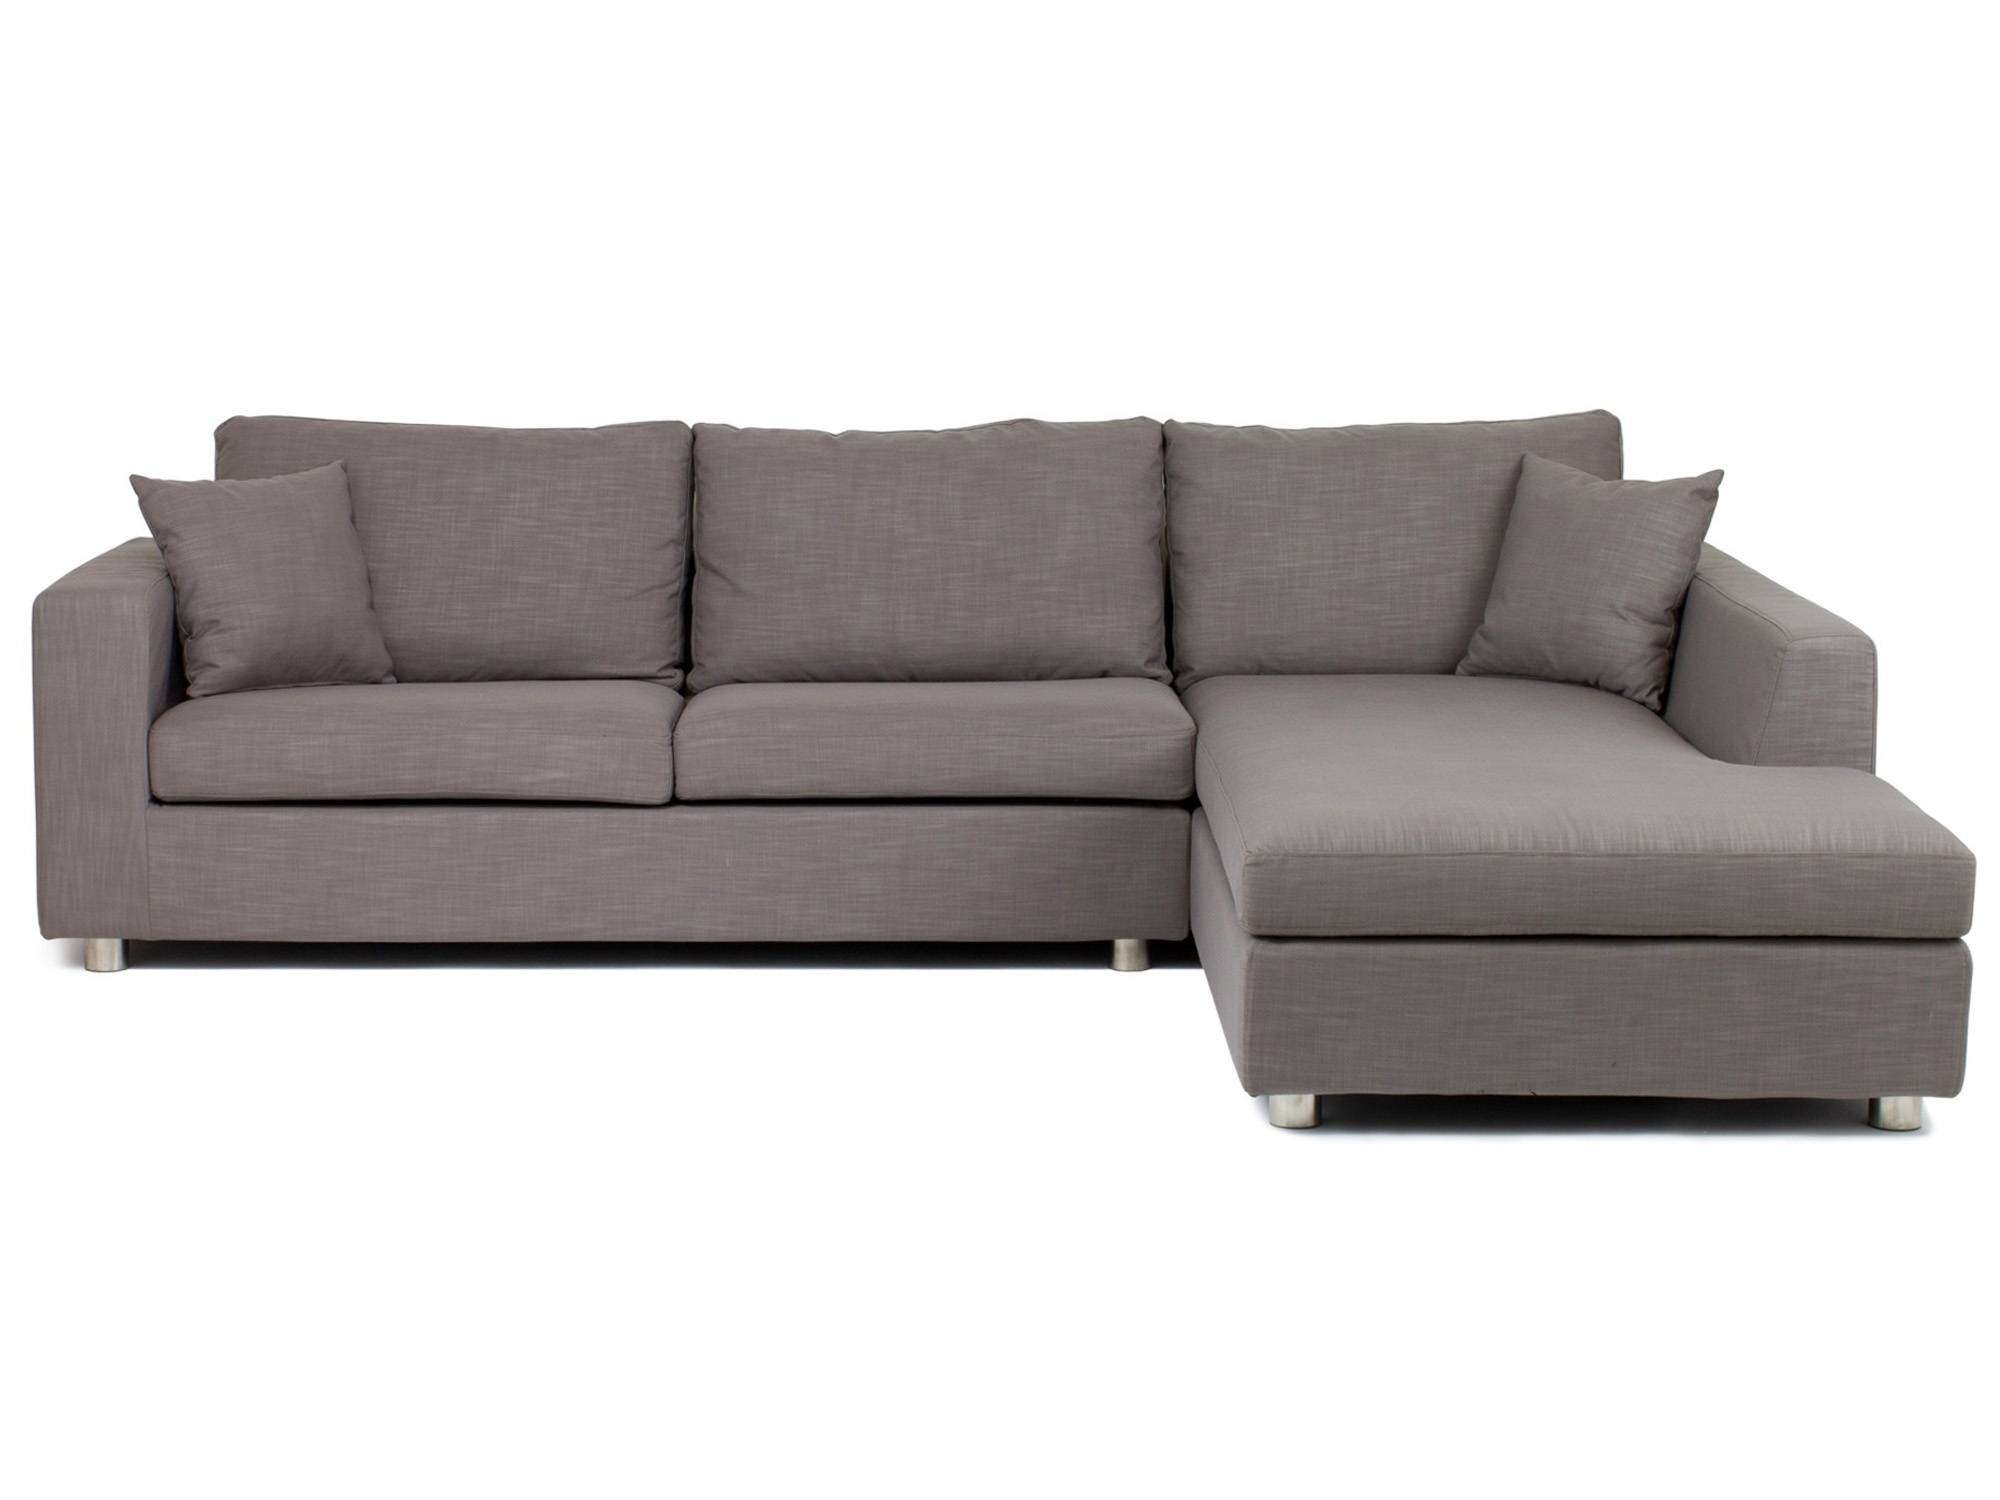 Sofas: Classic Meets Contemporary Chaise Sofa Bed For Ideal Living For Sectional Sleeper Sofas With Chaise (View 23 of 30)